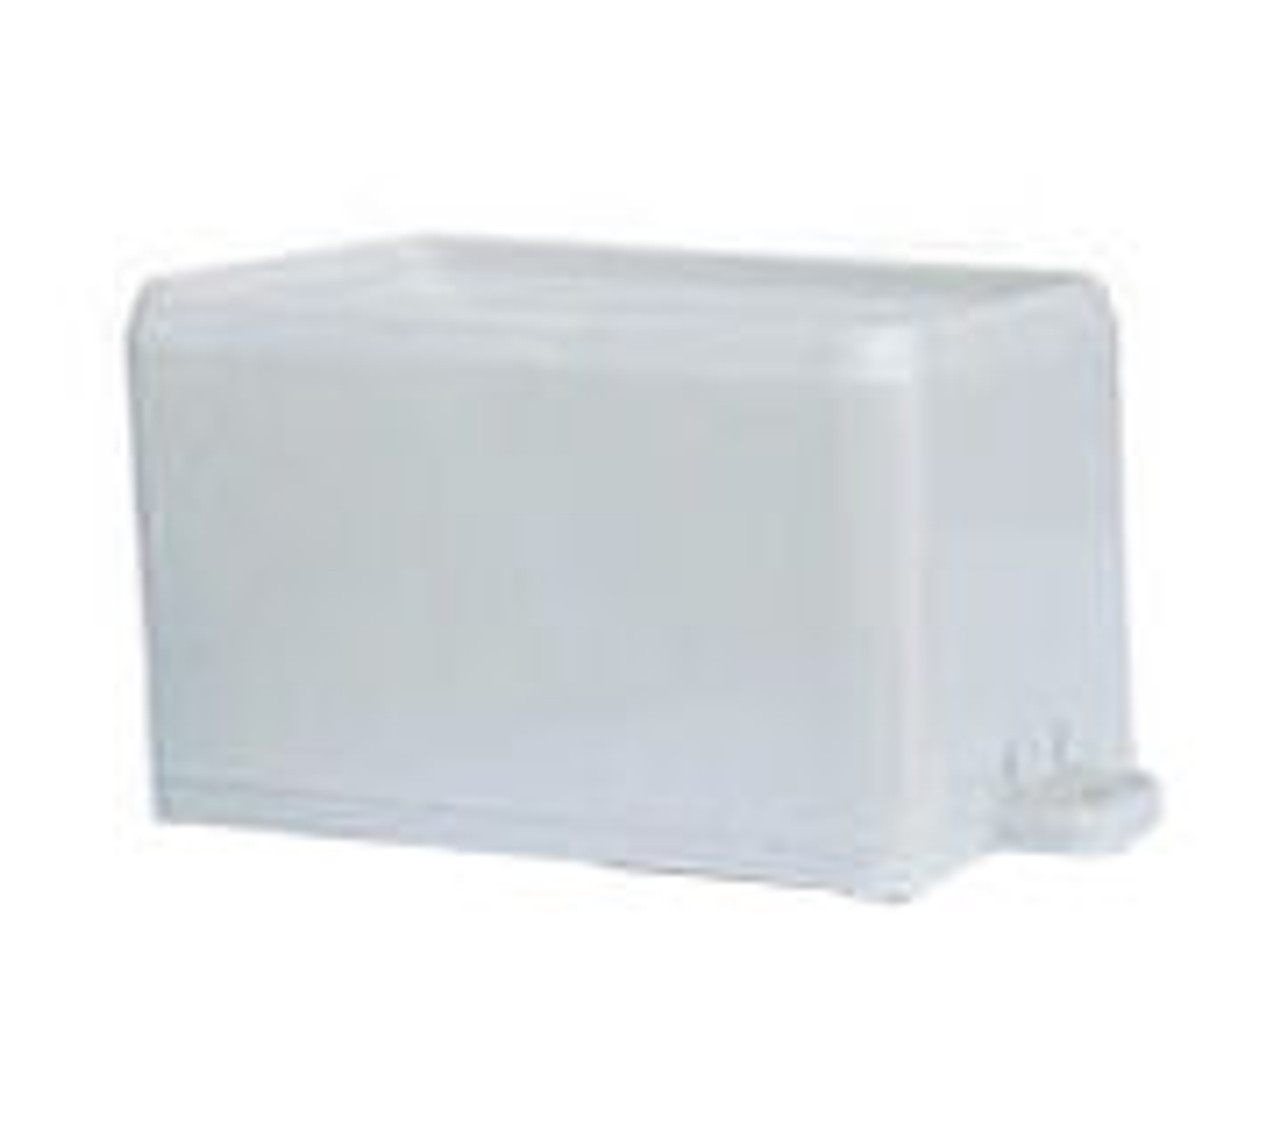 Rain Bucket for Weather Stations WH1050, WS1051, WS1053, WH1081 WS1081, WS1083, WS1093, WS2073, WS2083, WS3083